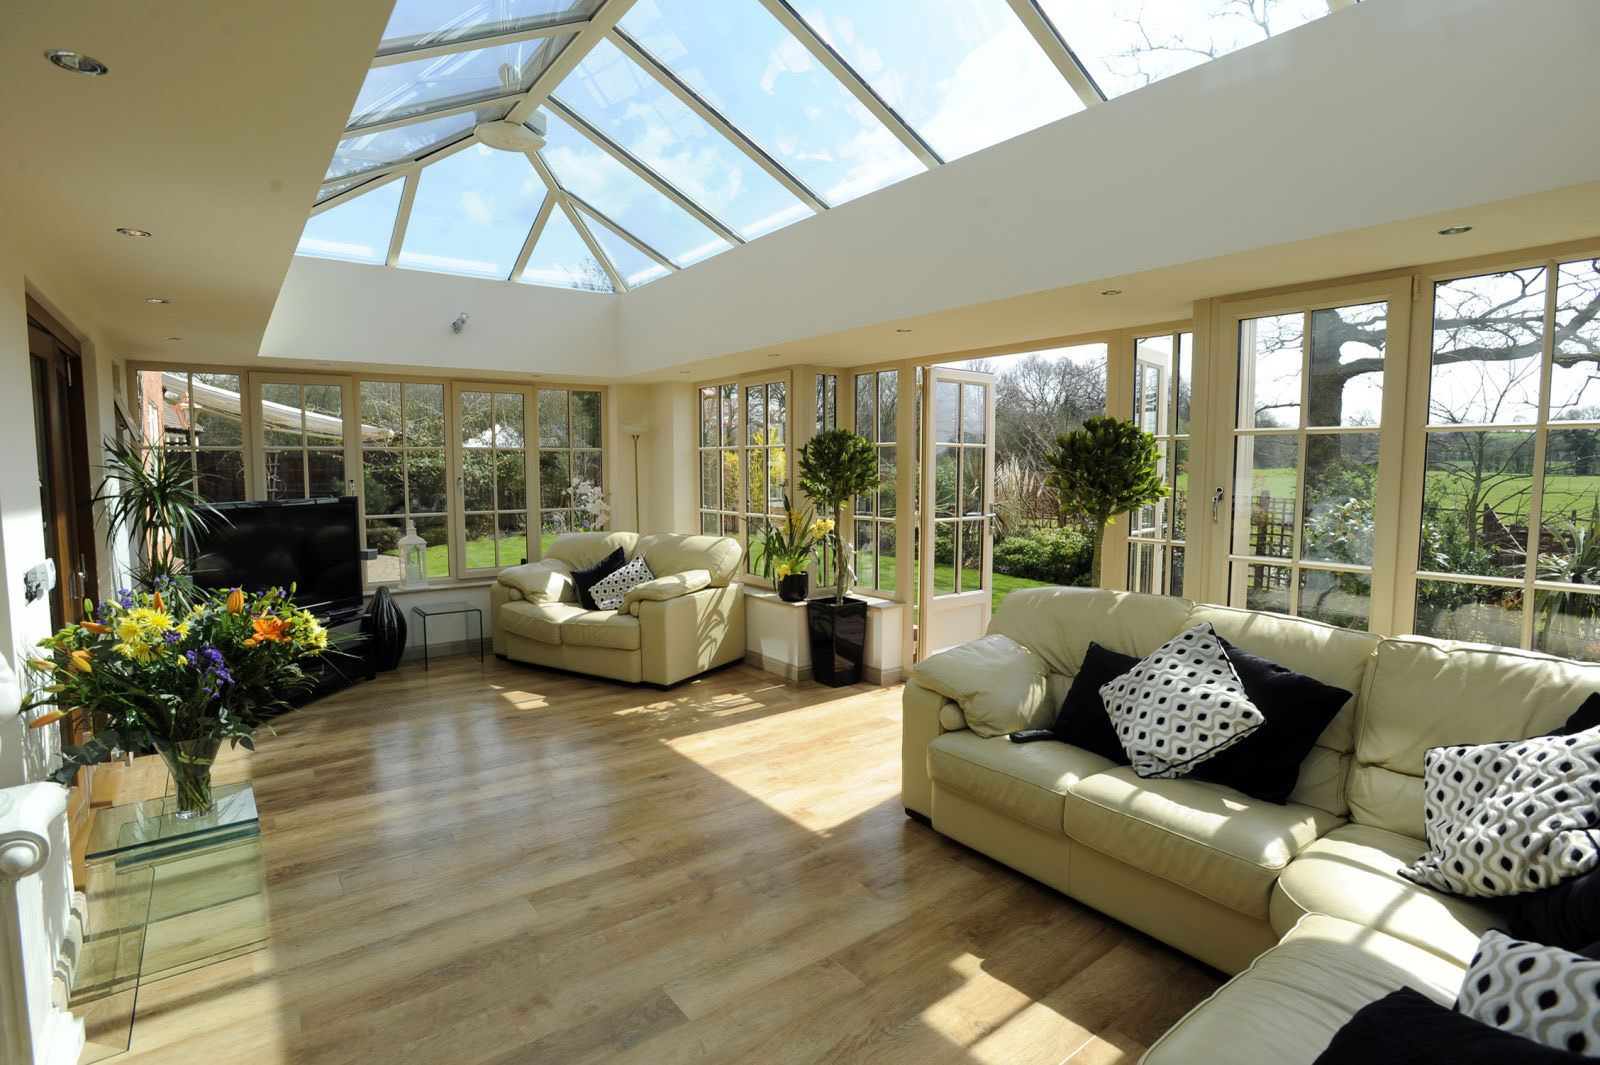 architects for home extensions images